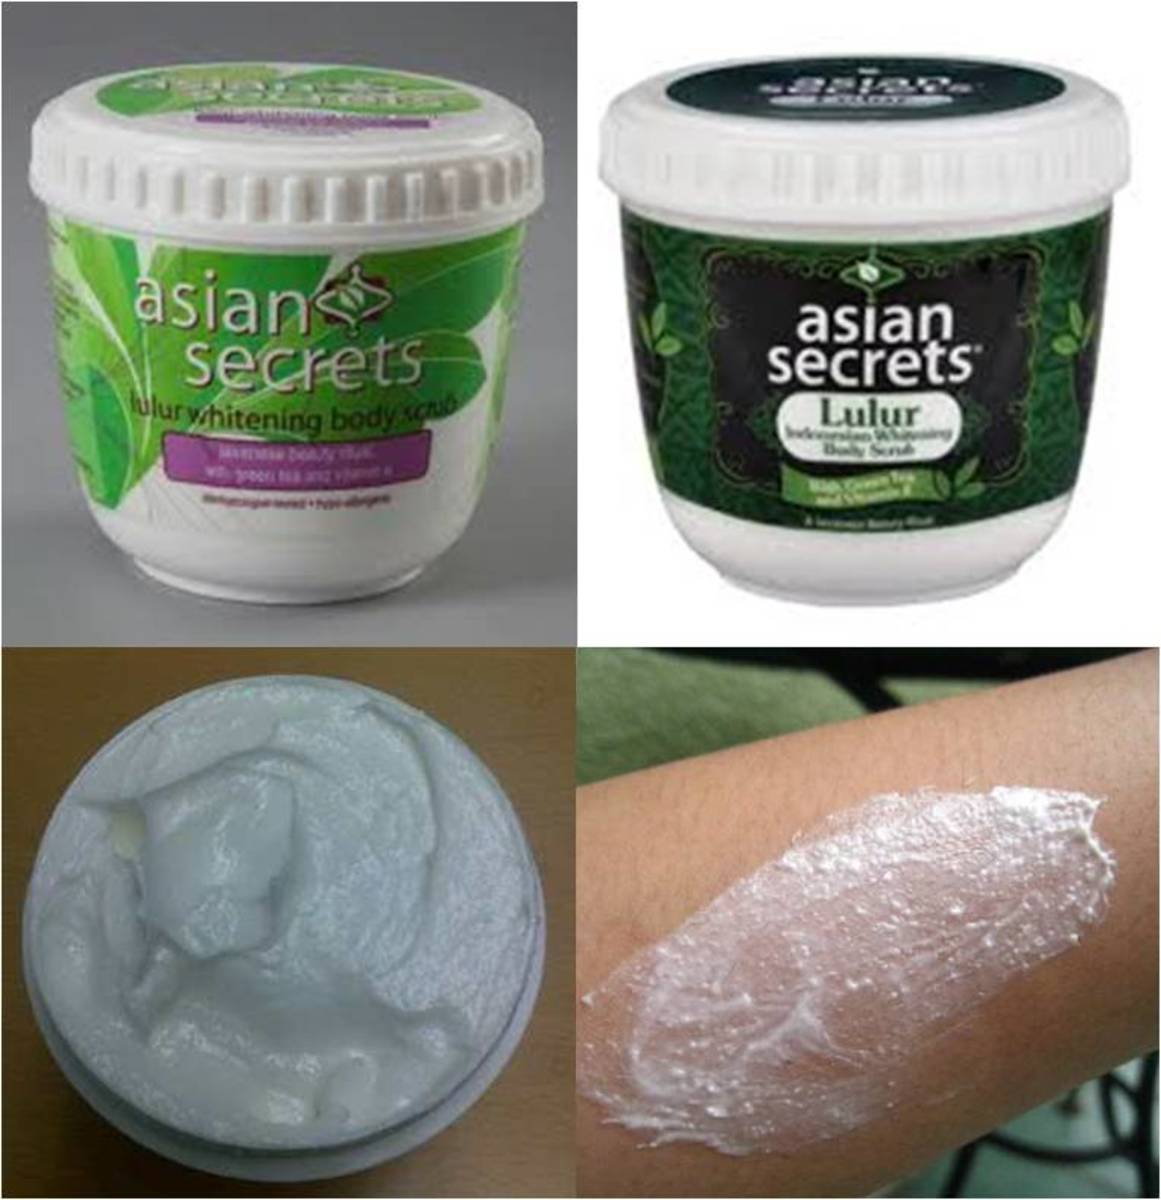 Asian Secrets Lulur Body Scrub